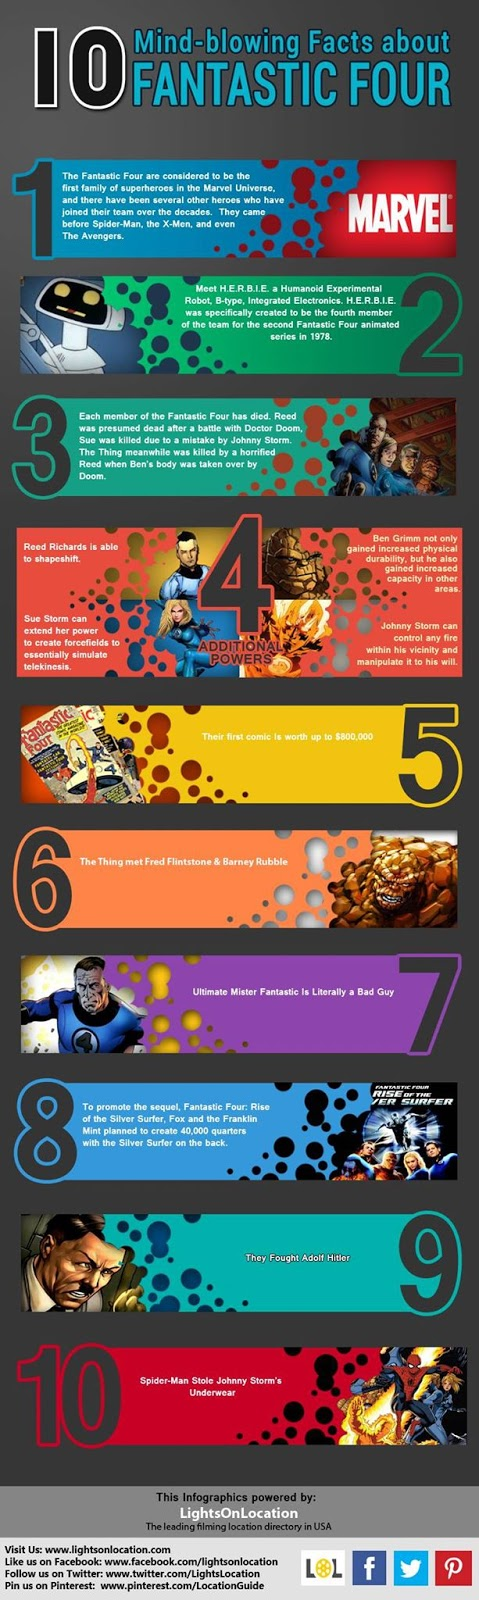 10 MIND-BLOWING FACTS ABOUT THE FANTASTIC FOUR